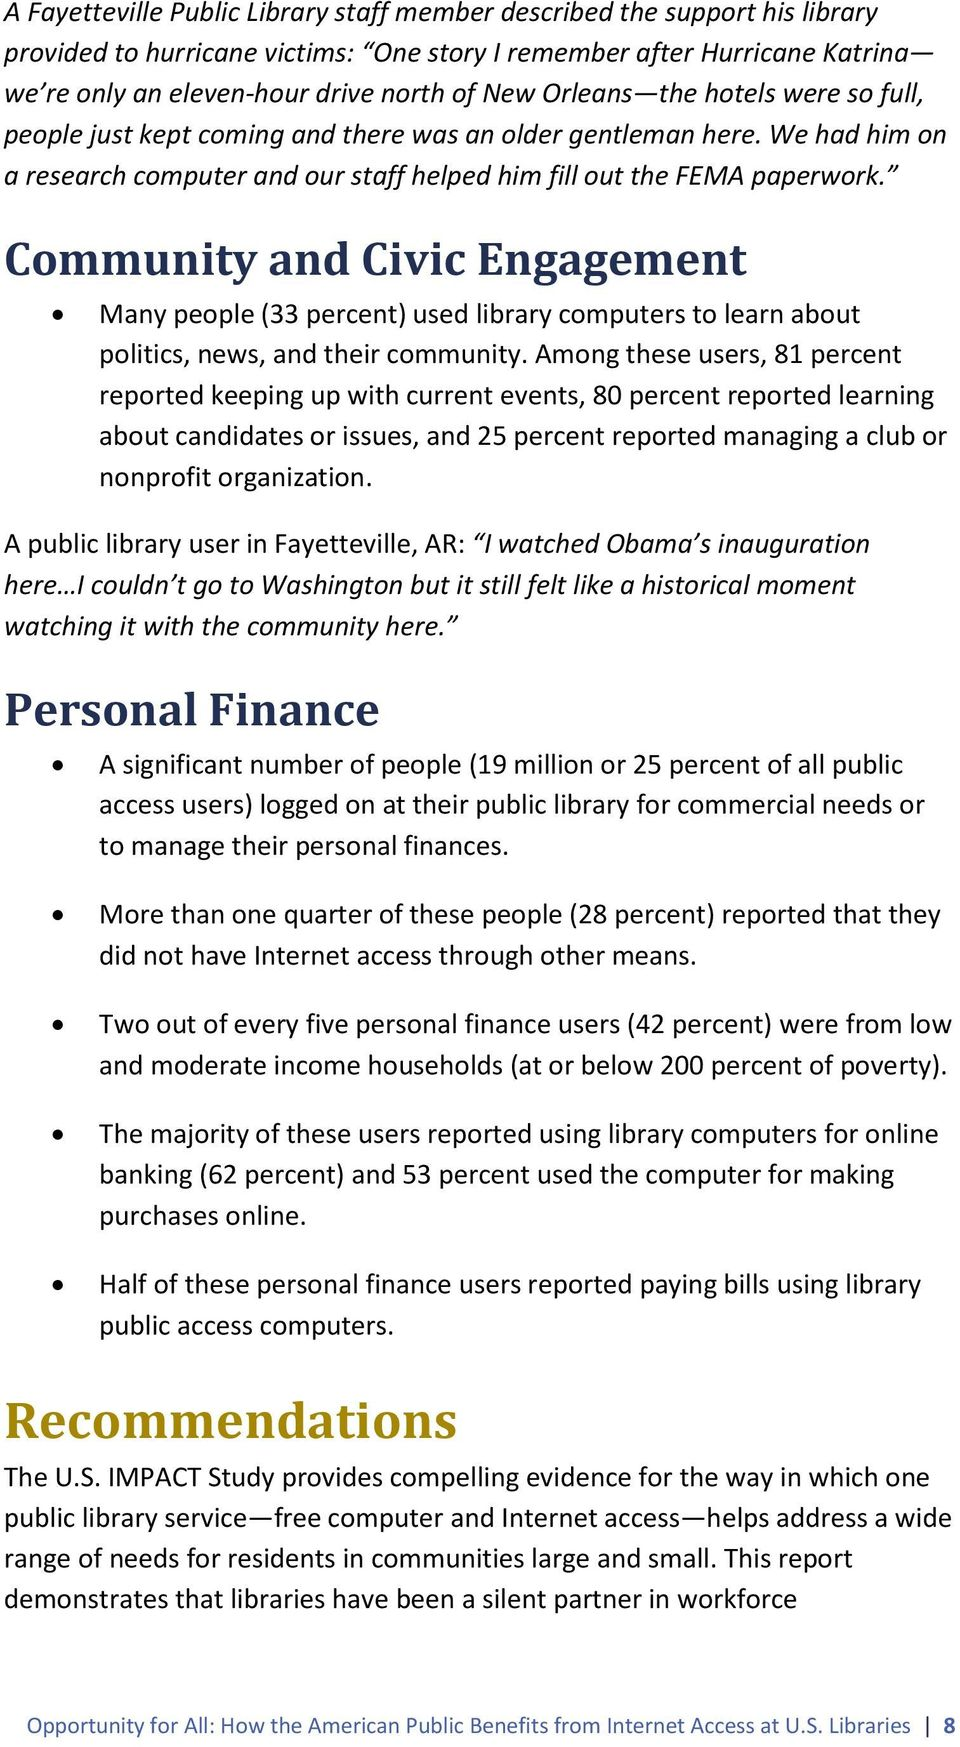 Community and Civic Engagement Many people (33 percent) used library computers to learn about politics, news, and their community.